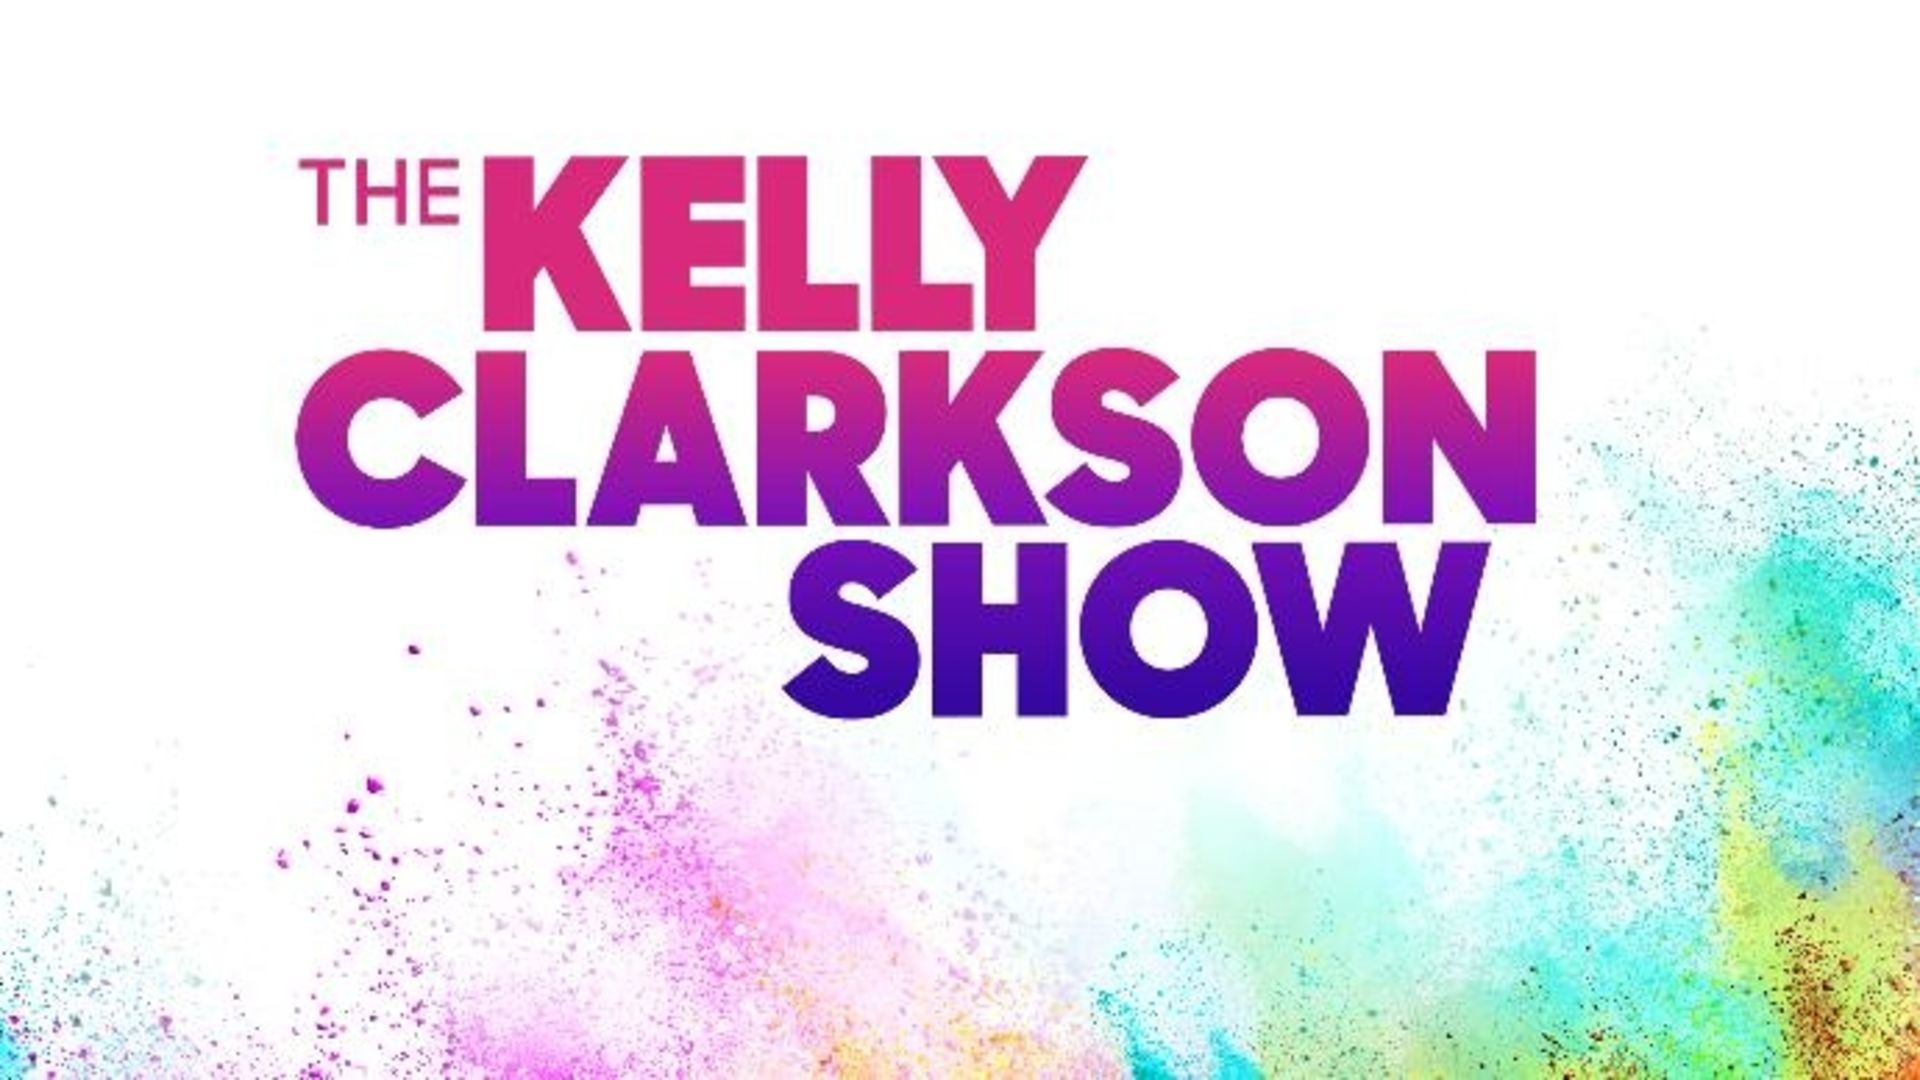 Show The Kelly Clarkson Show